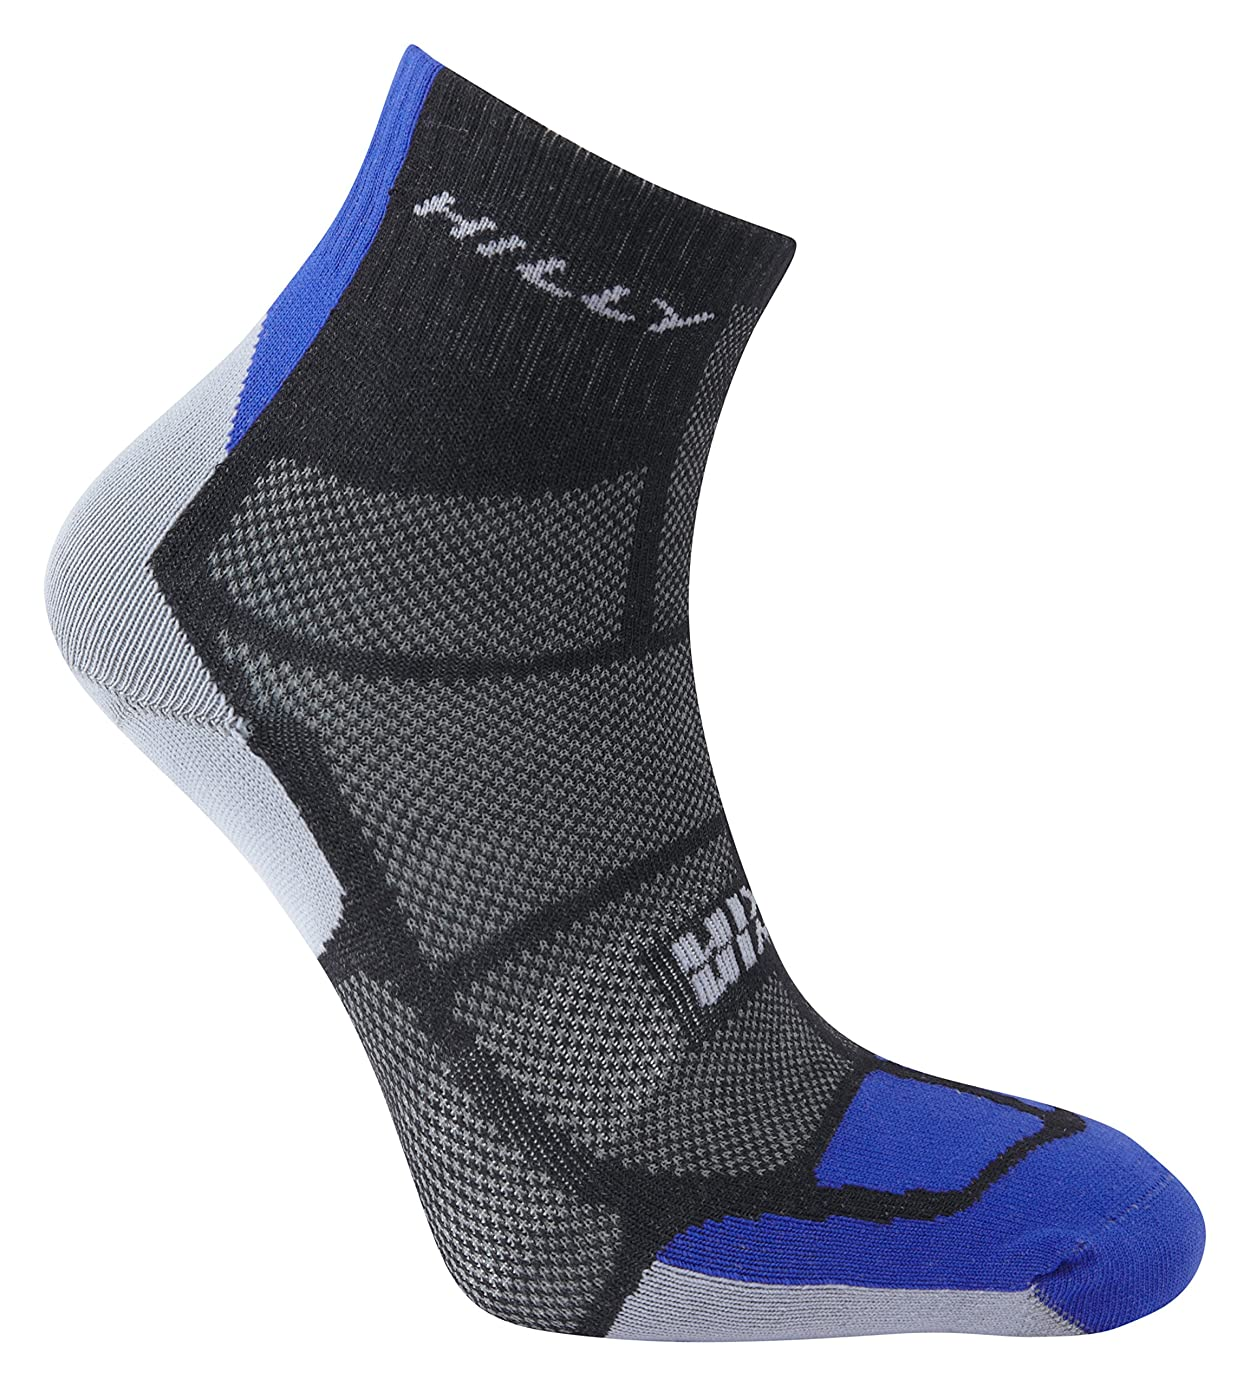 Hilly Men's Twin Skin Anklet Socks